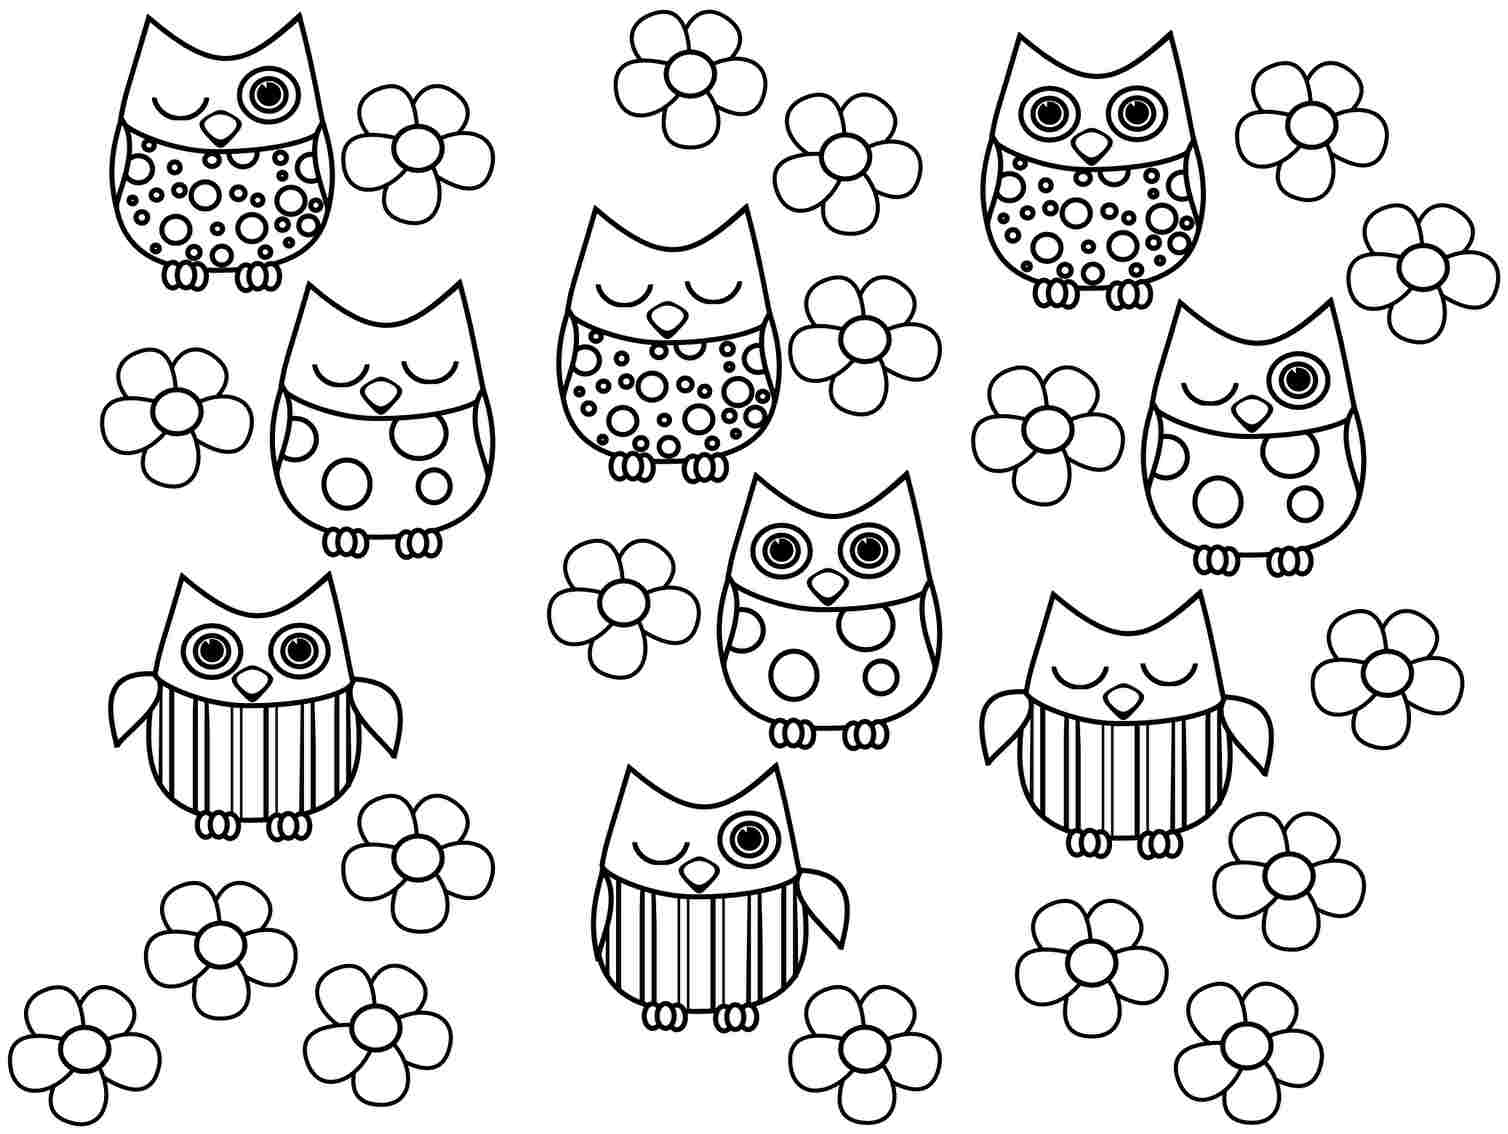 Owl Coloring Pages Pdf : Free owl printable coloring page az pages